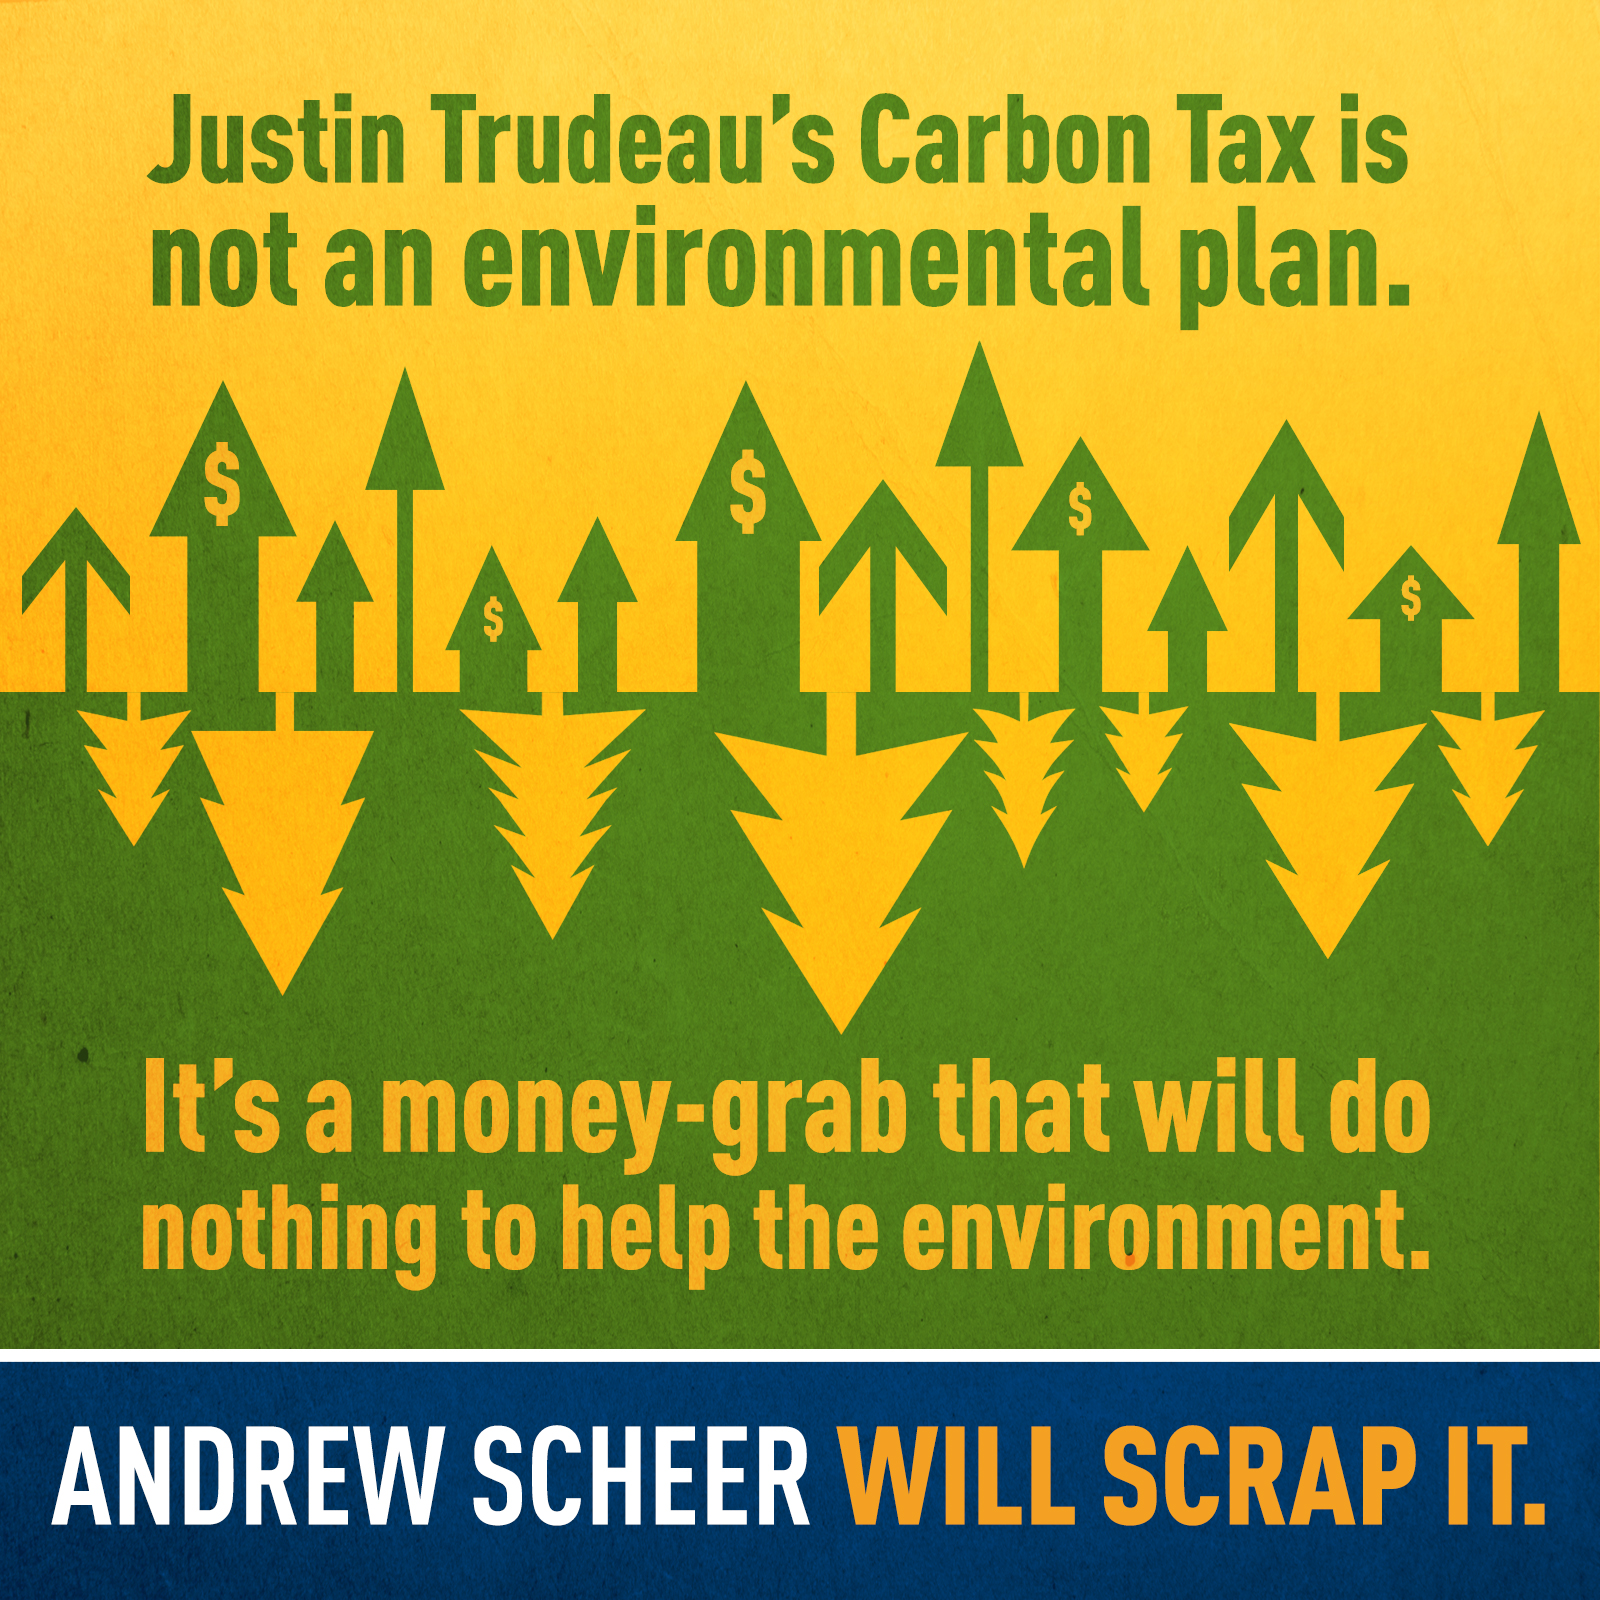 The Trudeau carbon tax debuts this April